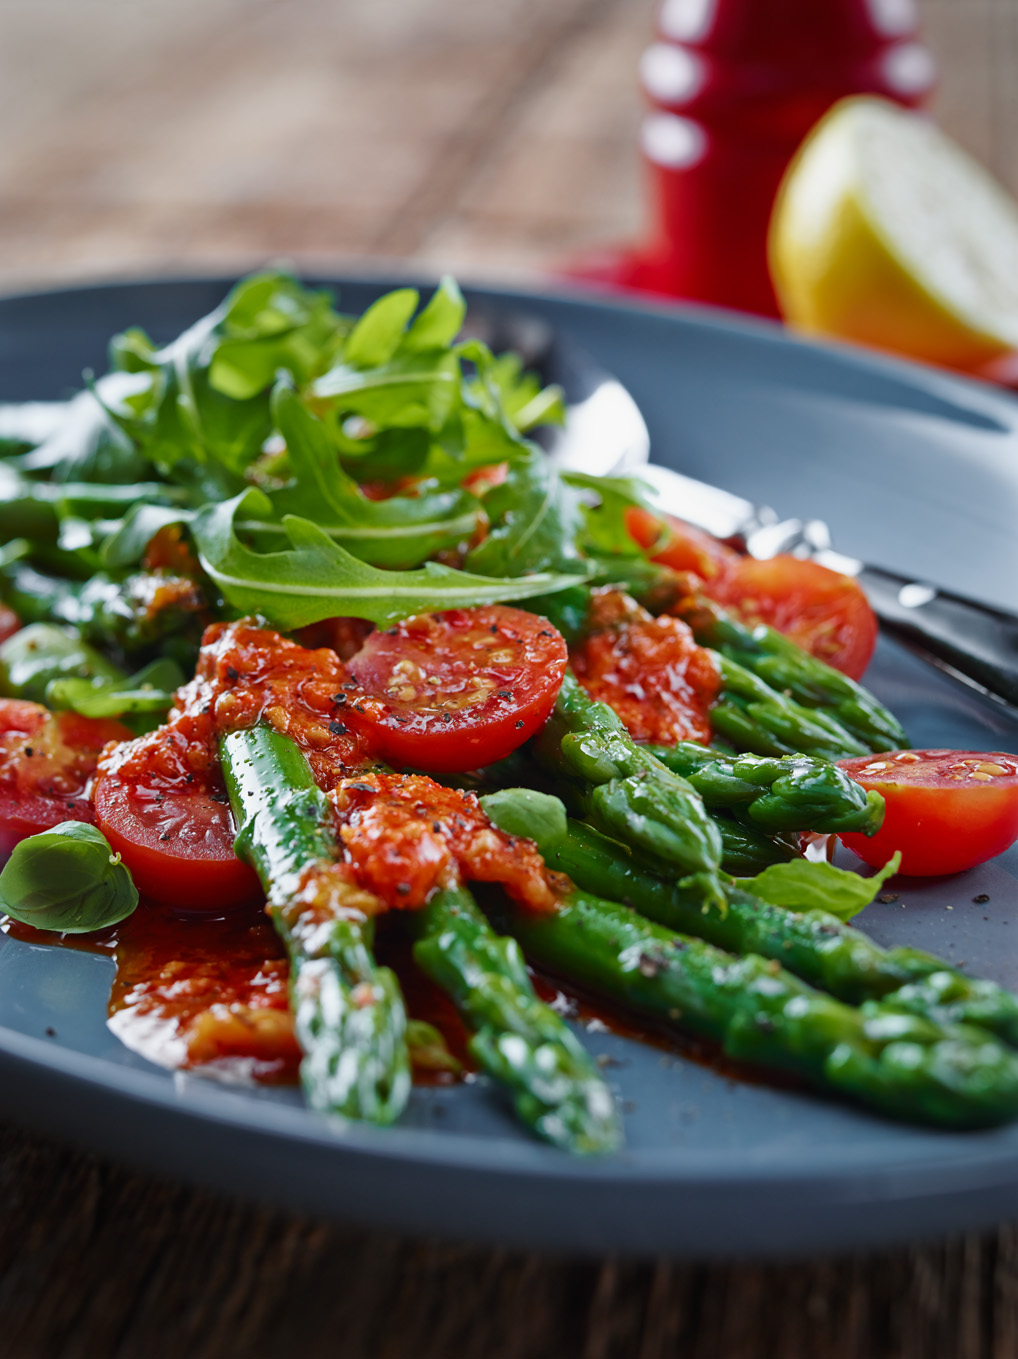 Asparagus and Tomato Salad with Capsicum Dressing